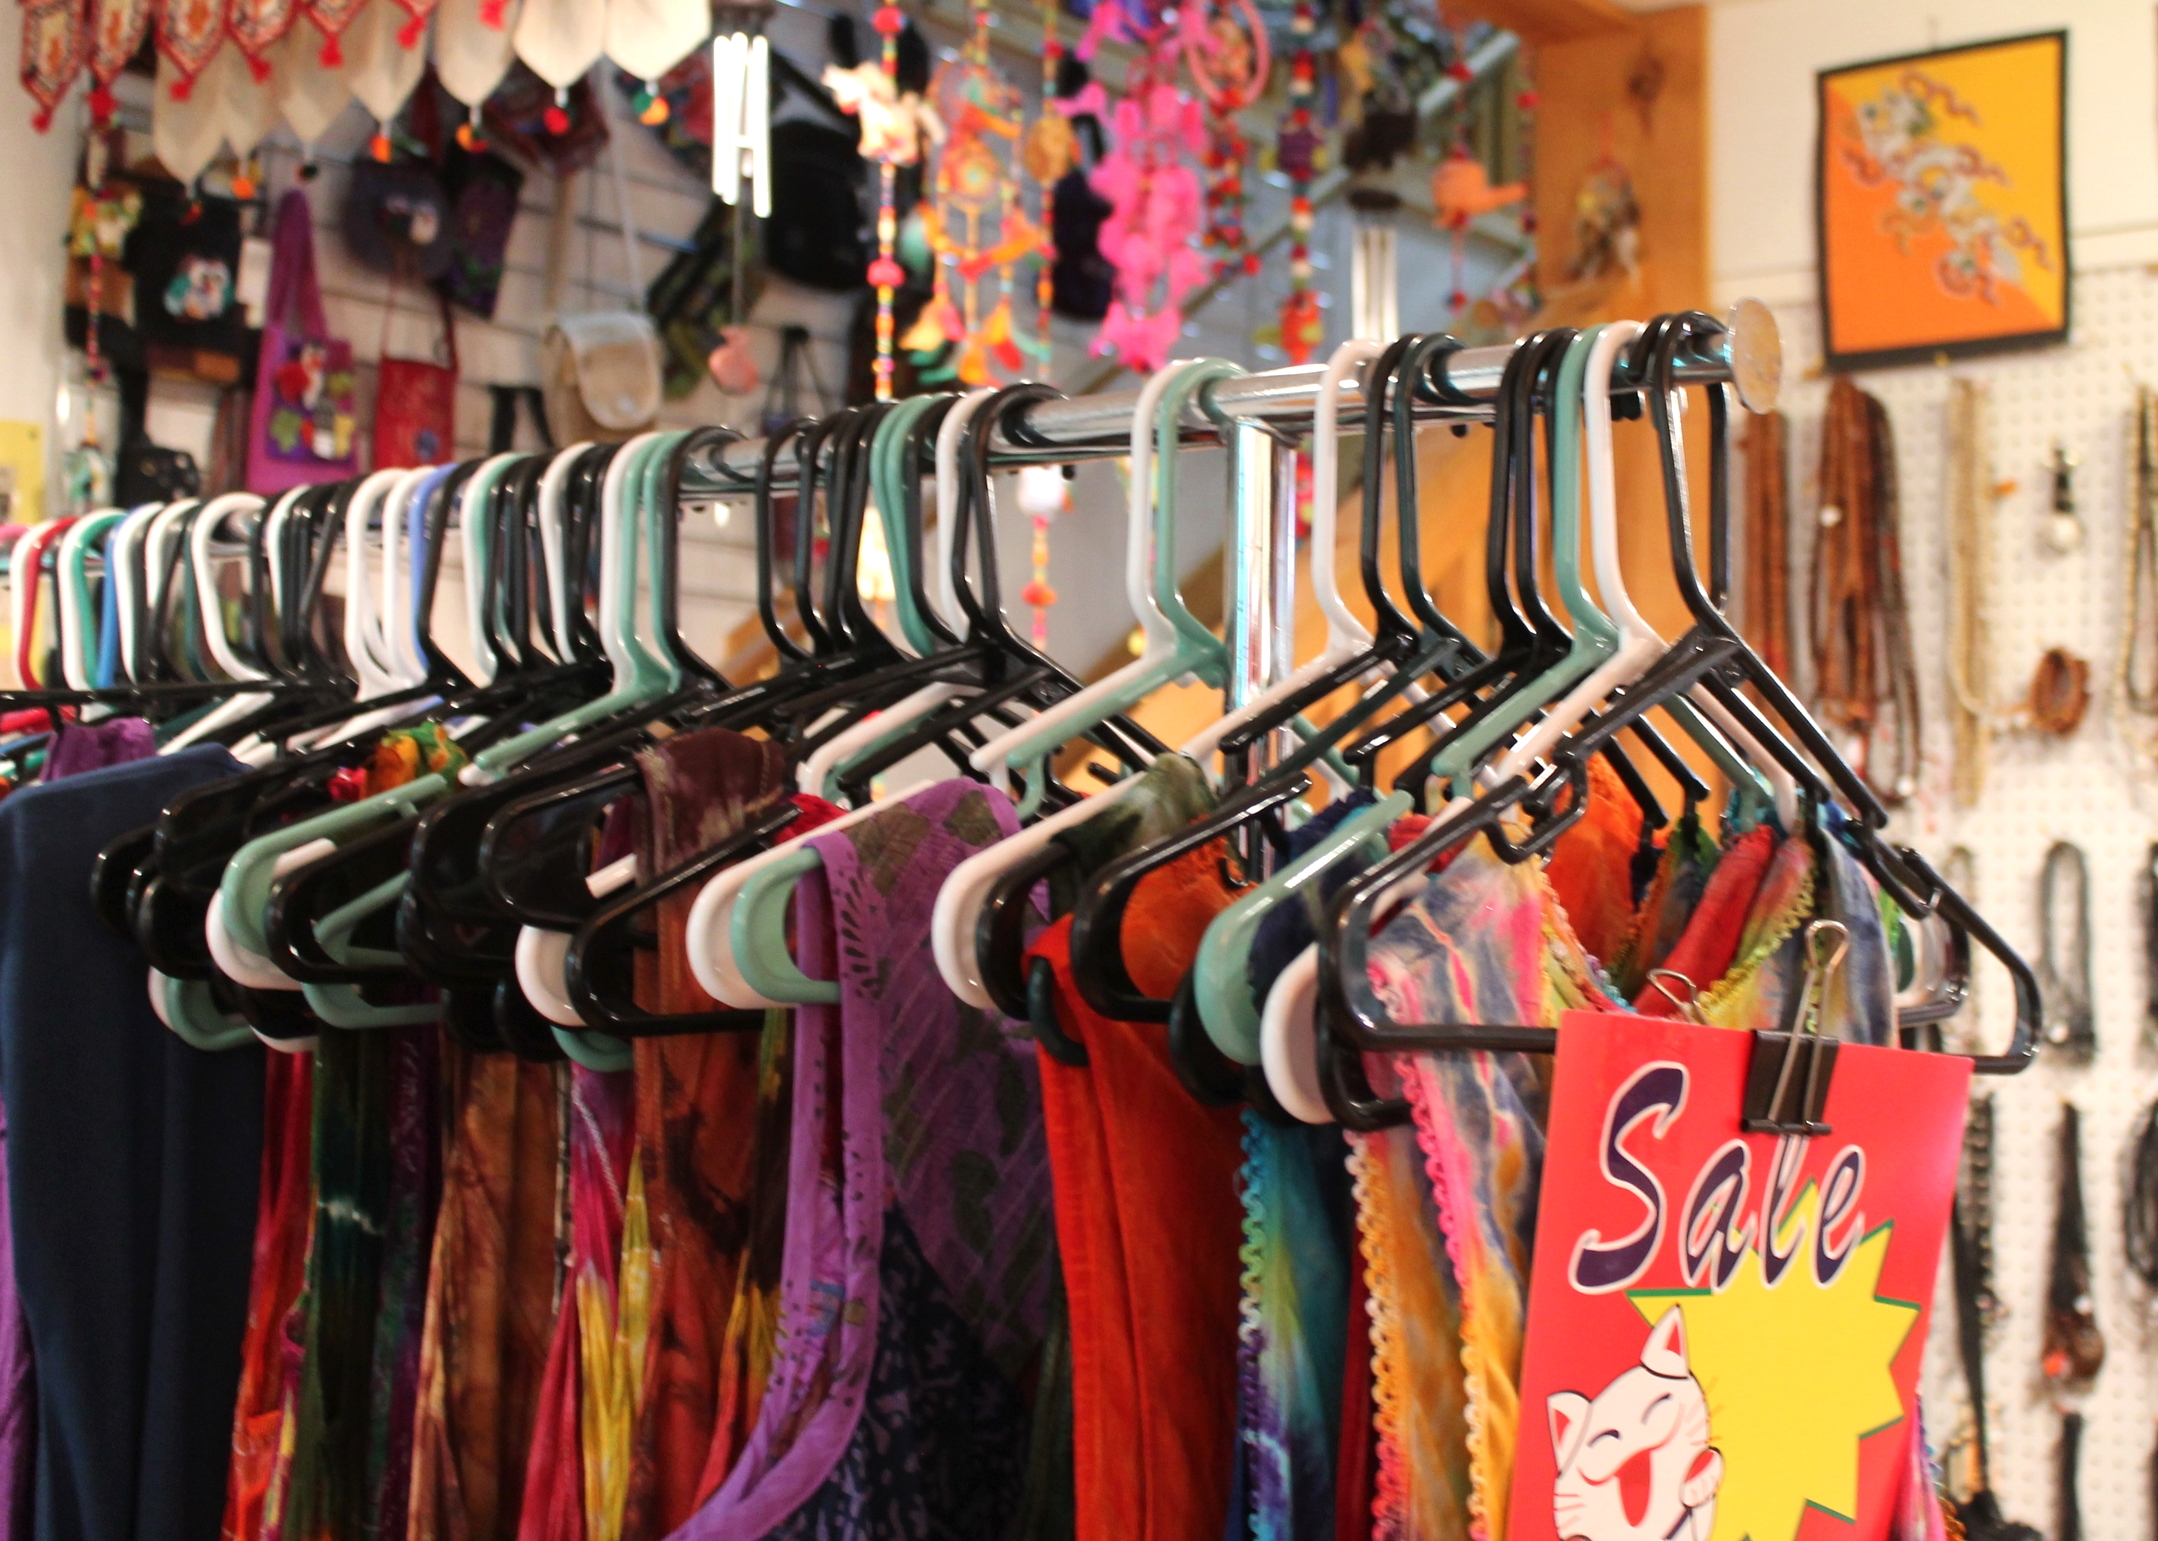 Since the store's stock is dependent on Juliet's travels, many items are often put on sale to make room for newer styles.